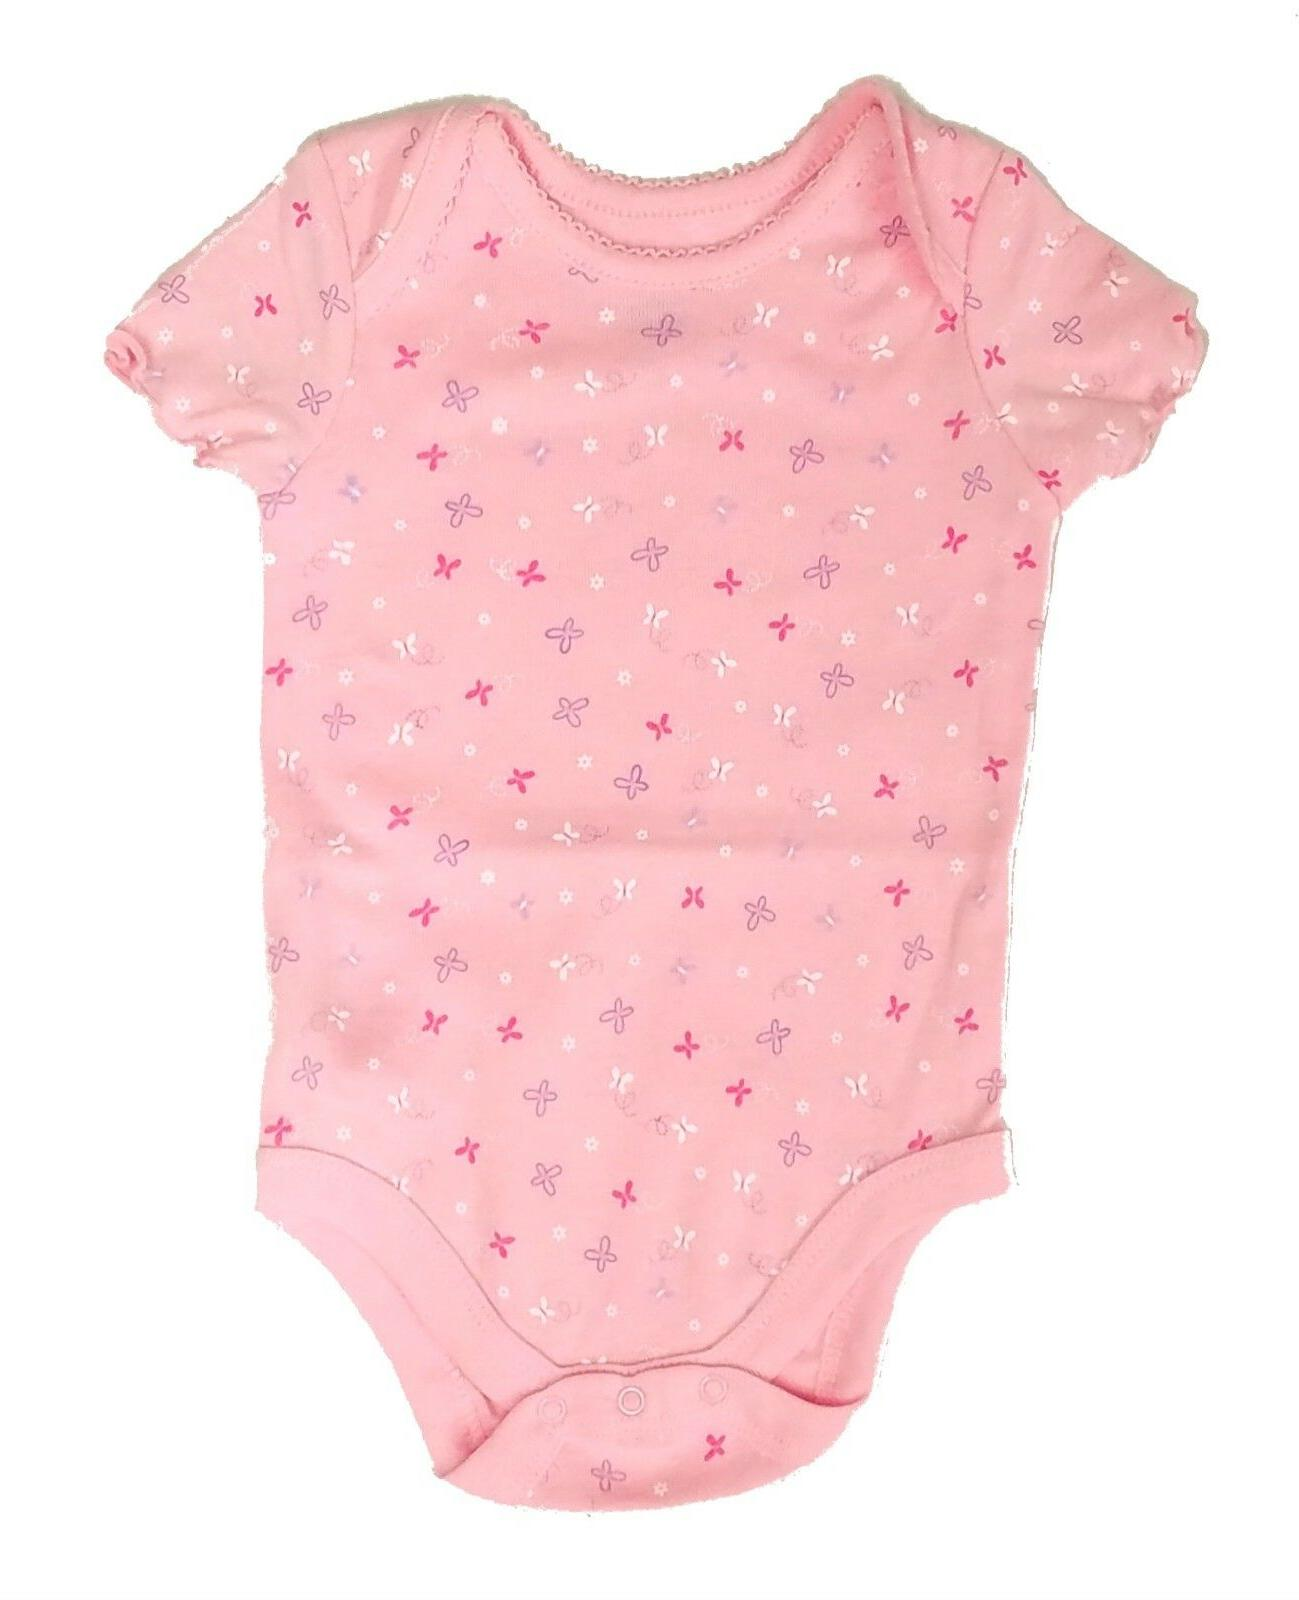 Newborn Bodysuit Pink Butterfly Toddler Months